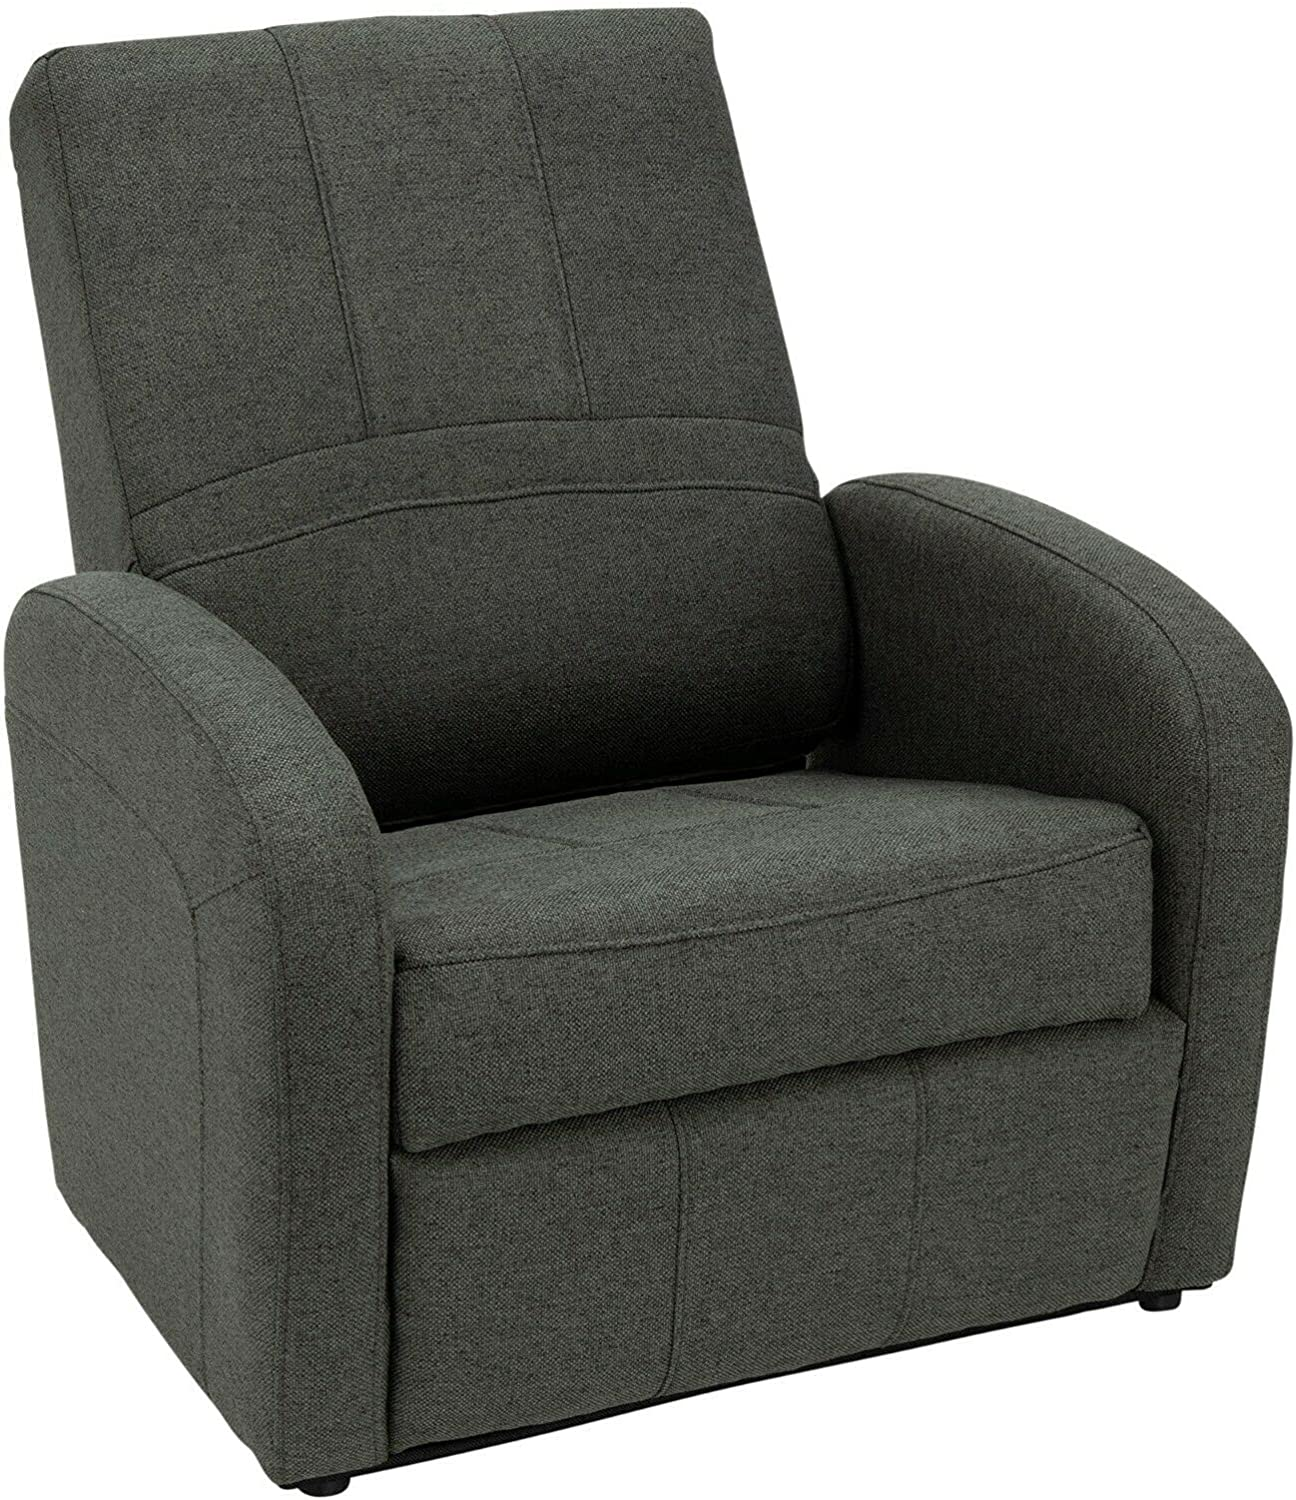 ADHW Gaming Chair Converts to Storage Furniture Cheap 2 RV Pack Cheap mail order shopping